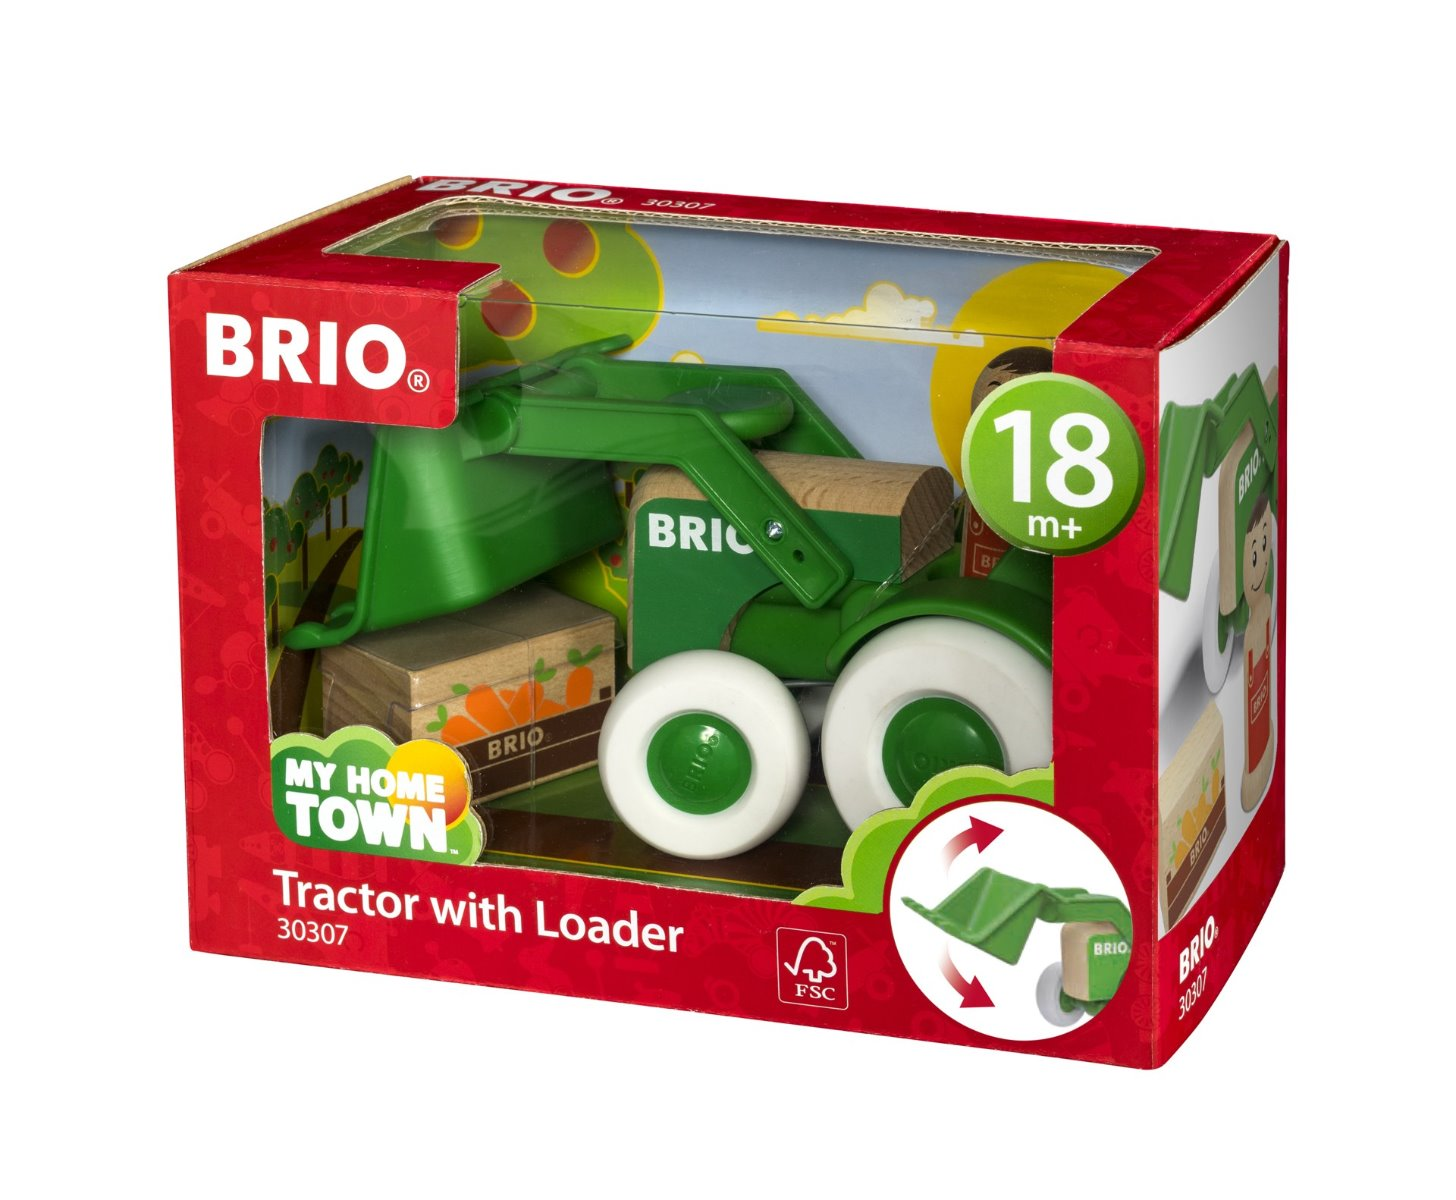 Brio 30307 Tractor with Loader available at Little Sprout